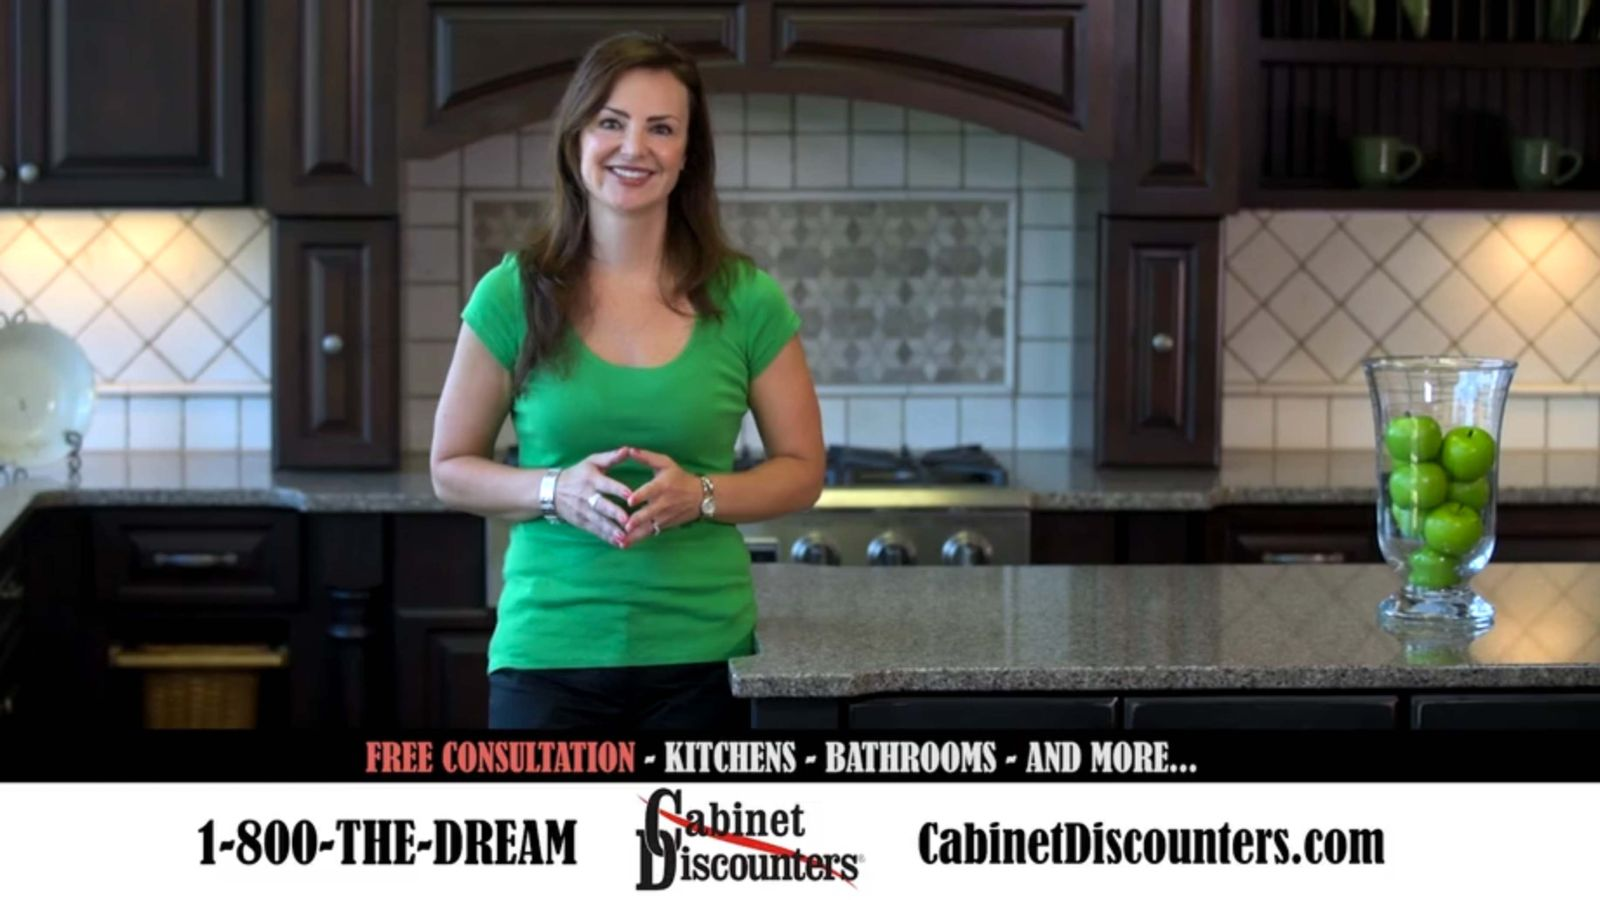 cabinet discounters spokesmodel